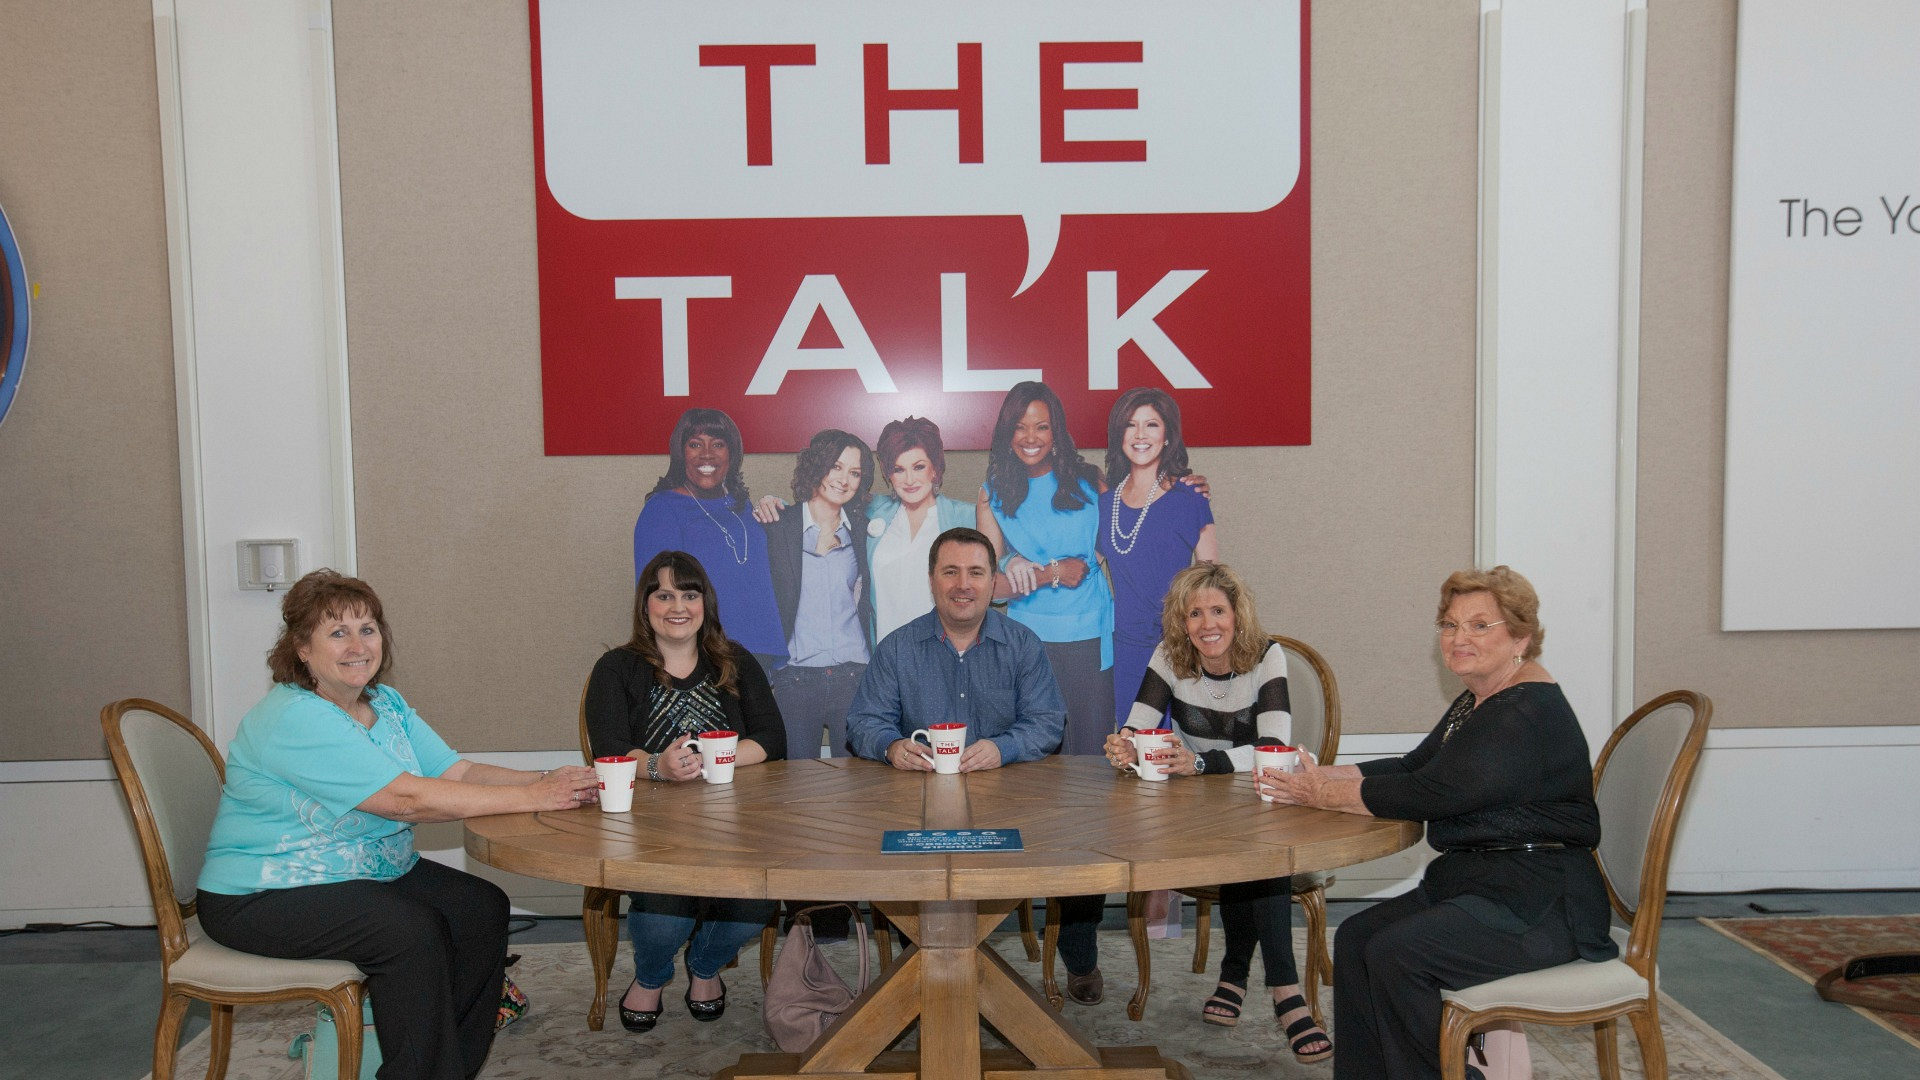 Five fans take a seat at The Talk table.